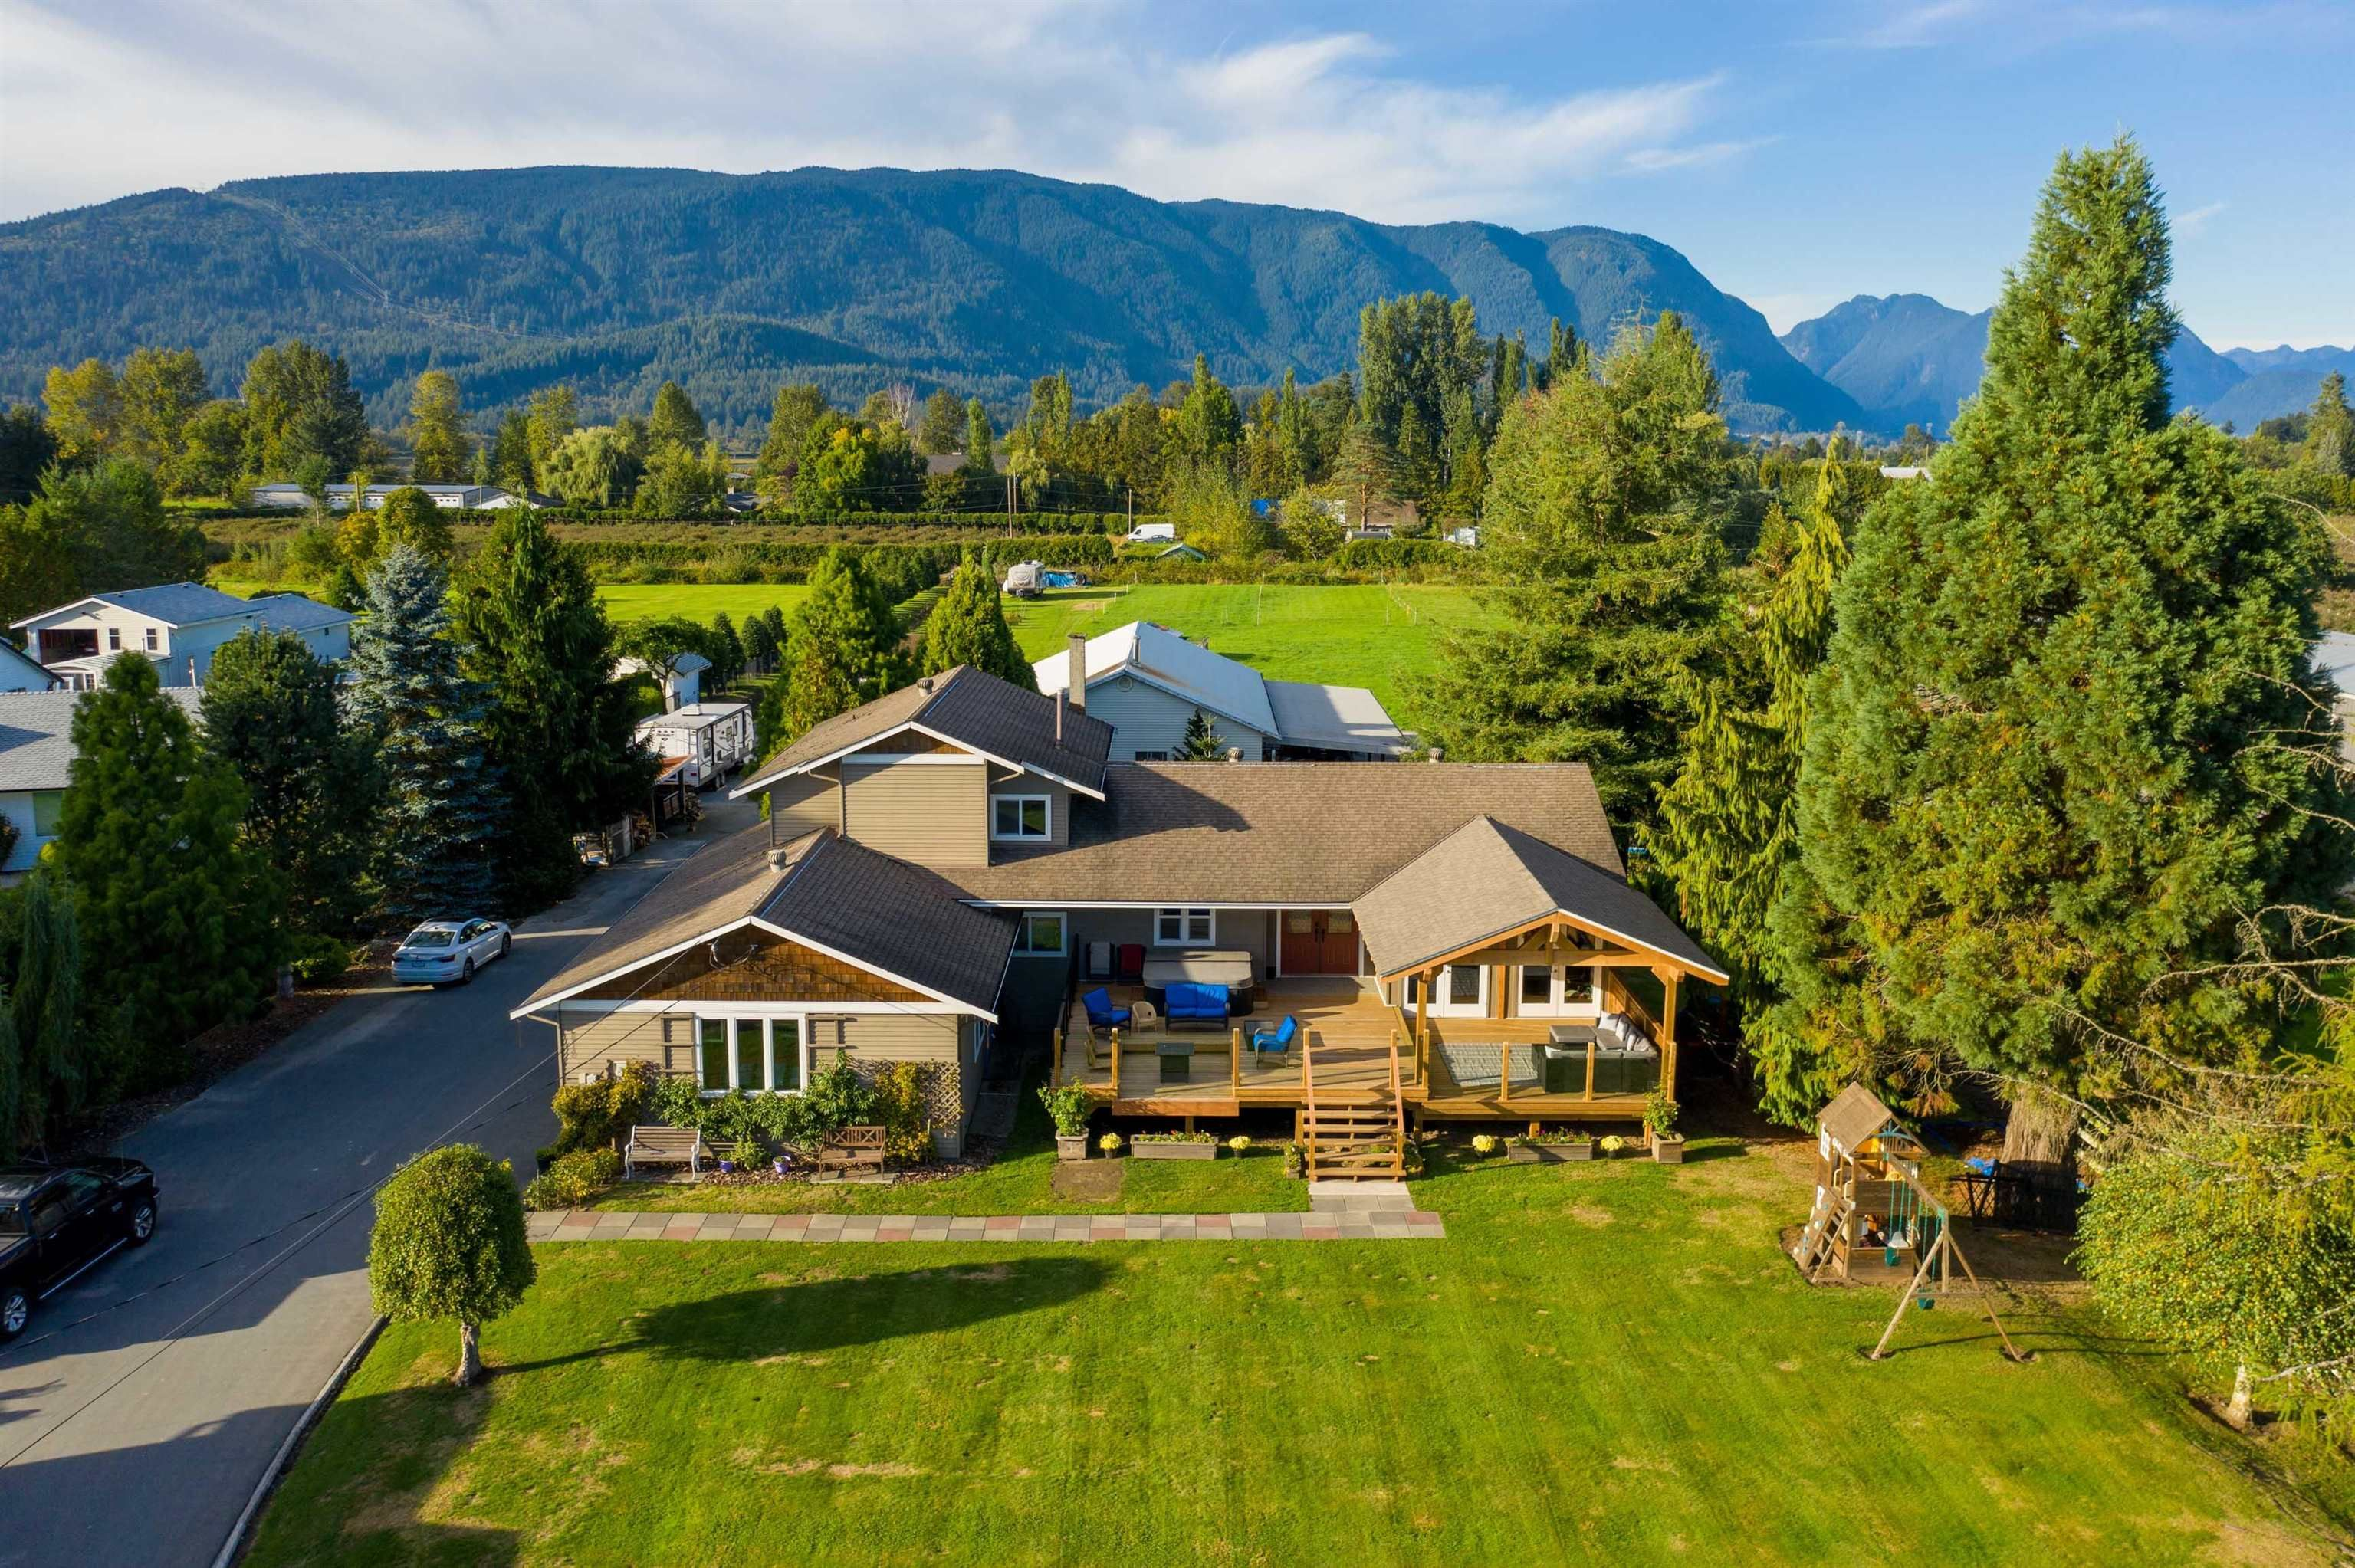 Main Photo: 18949 MCQUARRIE Road in Pitt Meadows: North Meadows PI House for sale : MLS®# R2620958